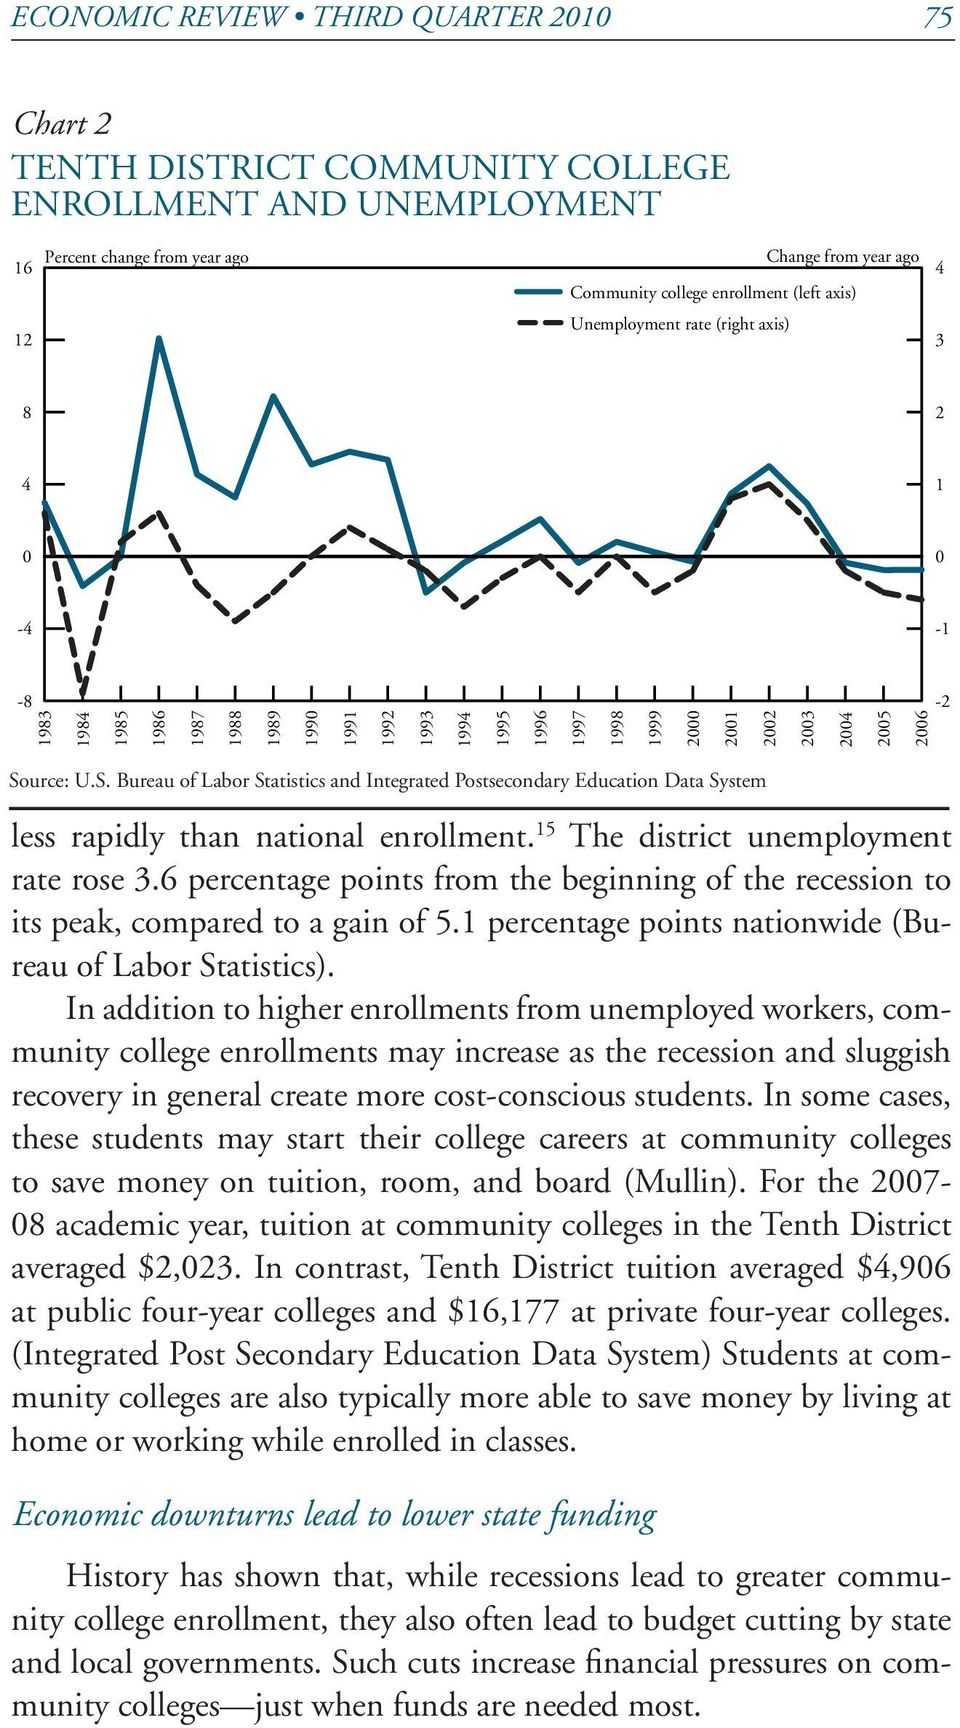 urce: U.S. Bureau of Labor Statistics and Integrated Postsecondary Education Data System less rapidly than national enrollment. 15 The district unemployment rate rose 3.